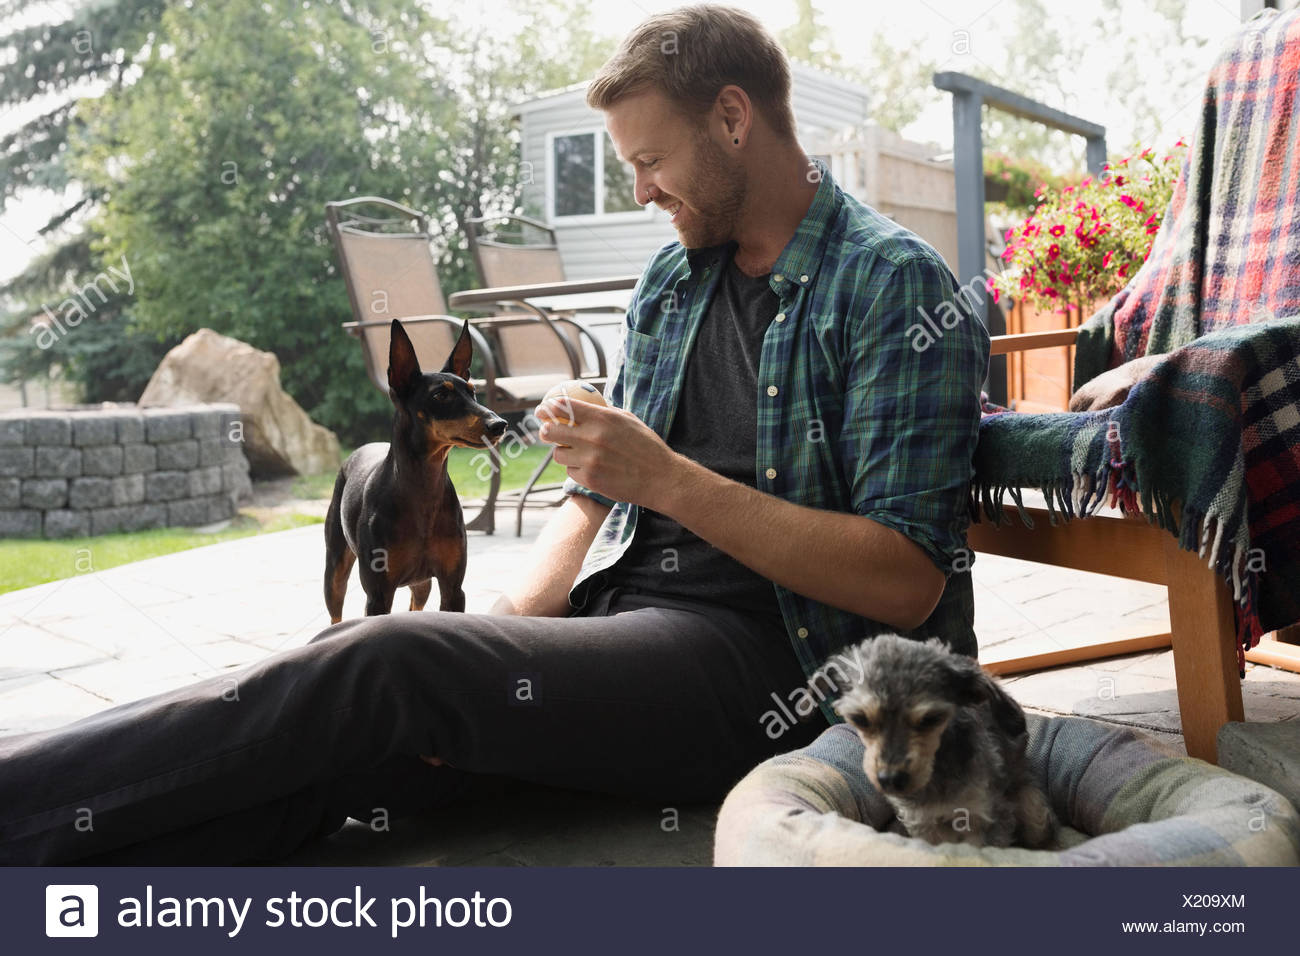 Man holding tennis ball for dog on patio - Stock Image